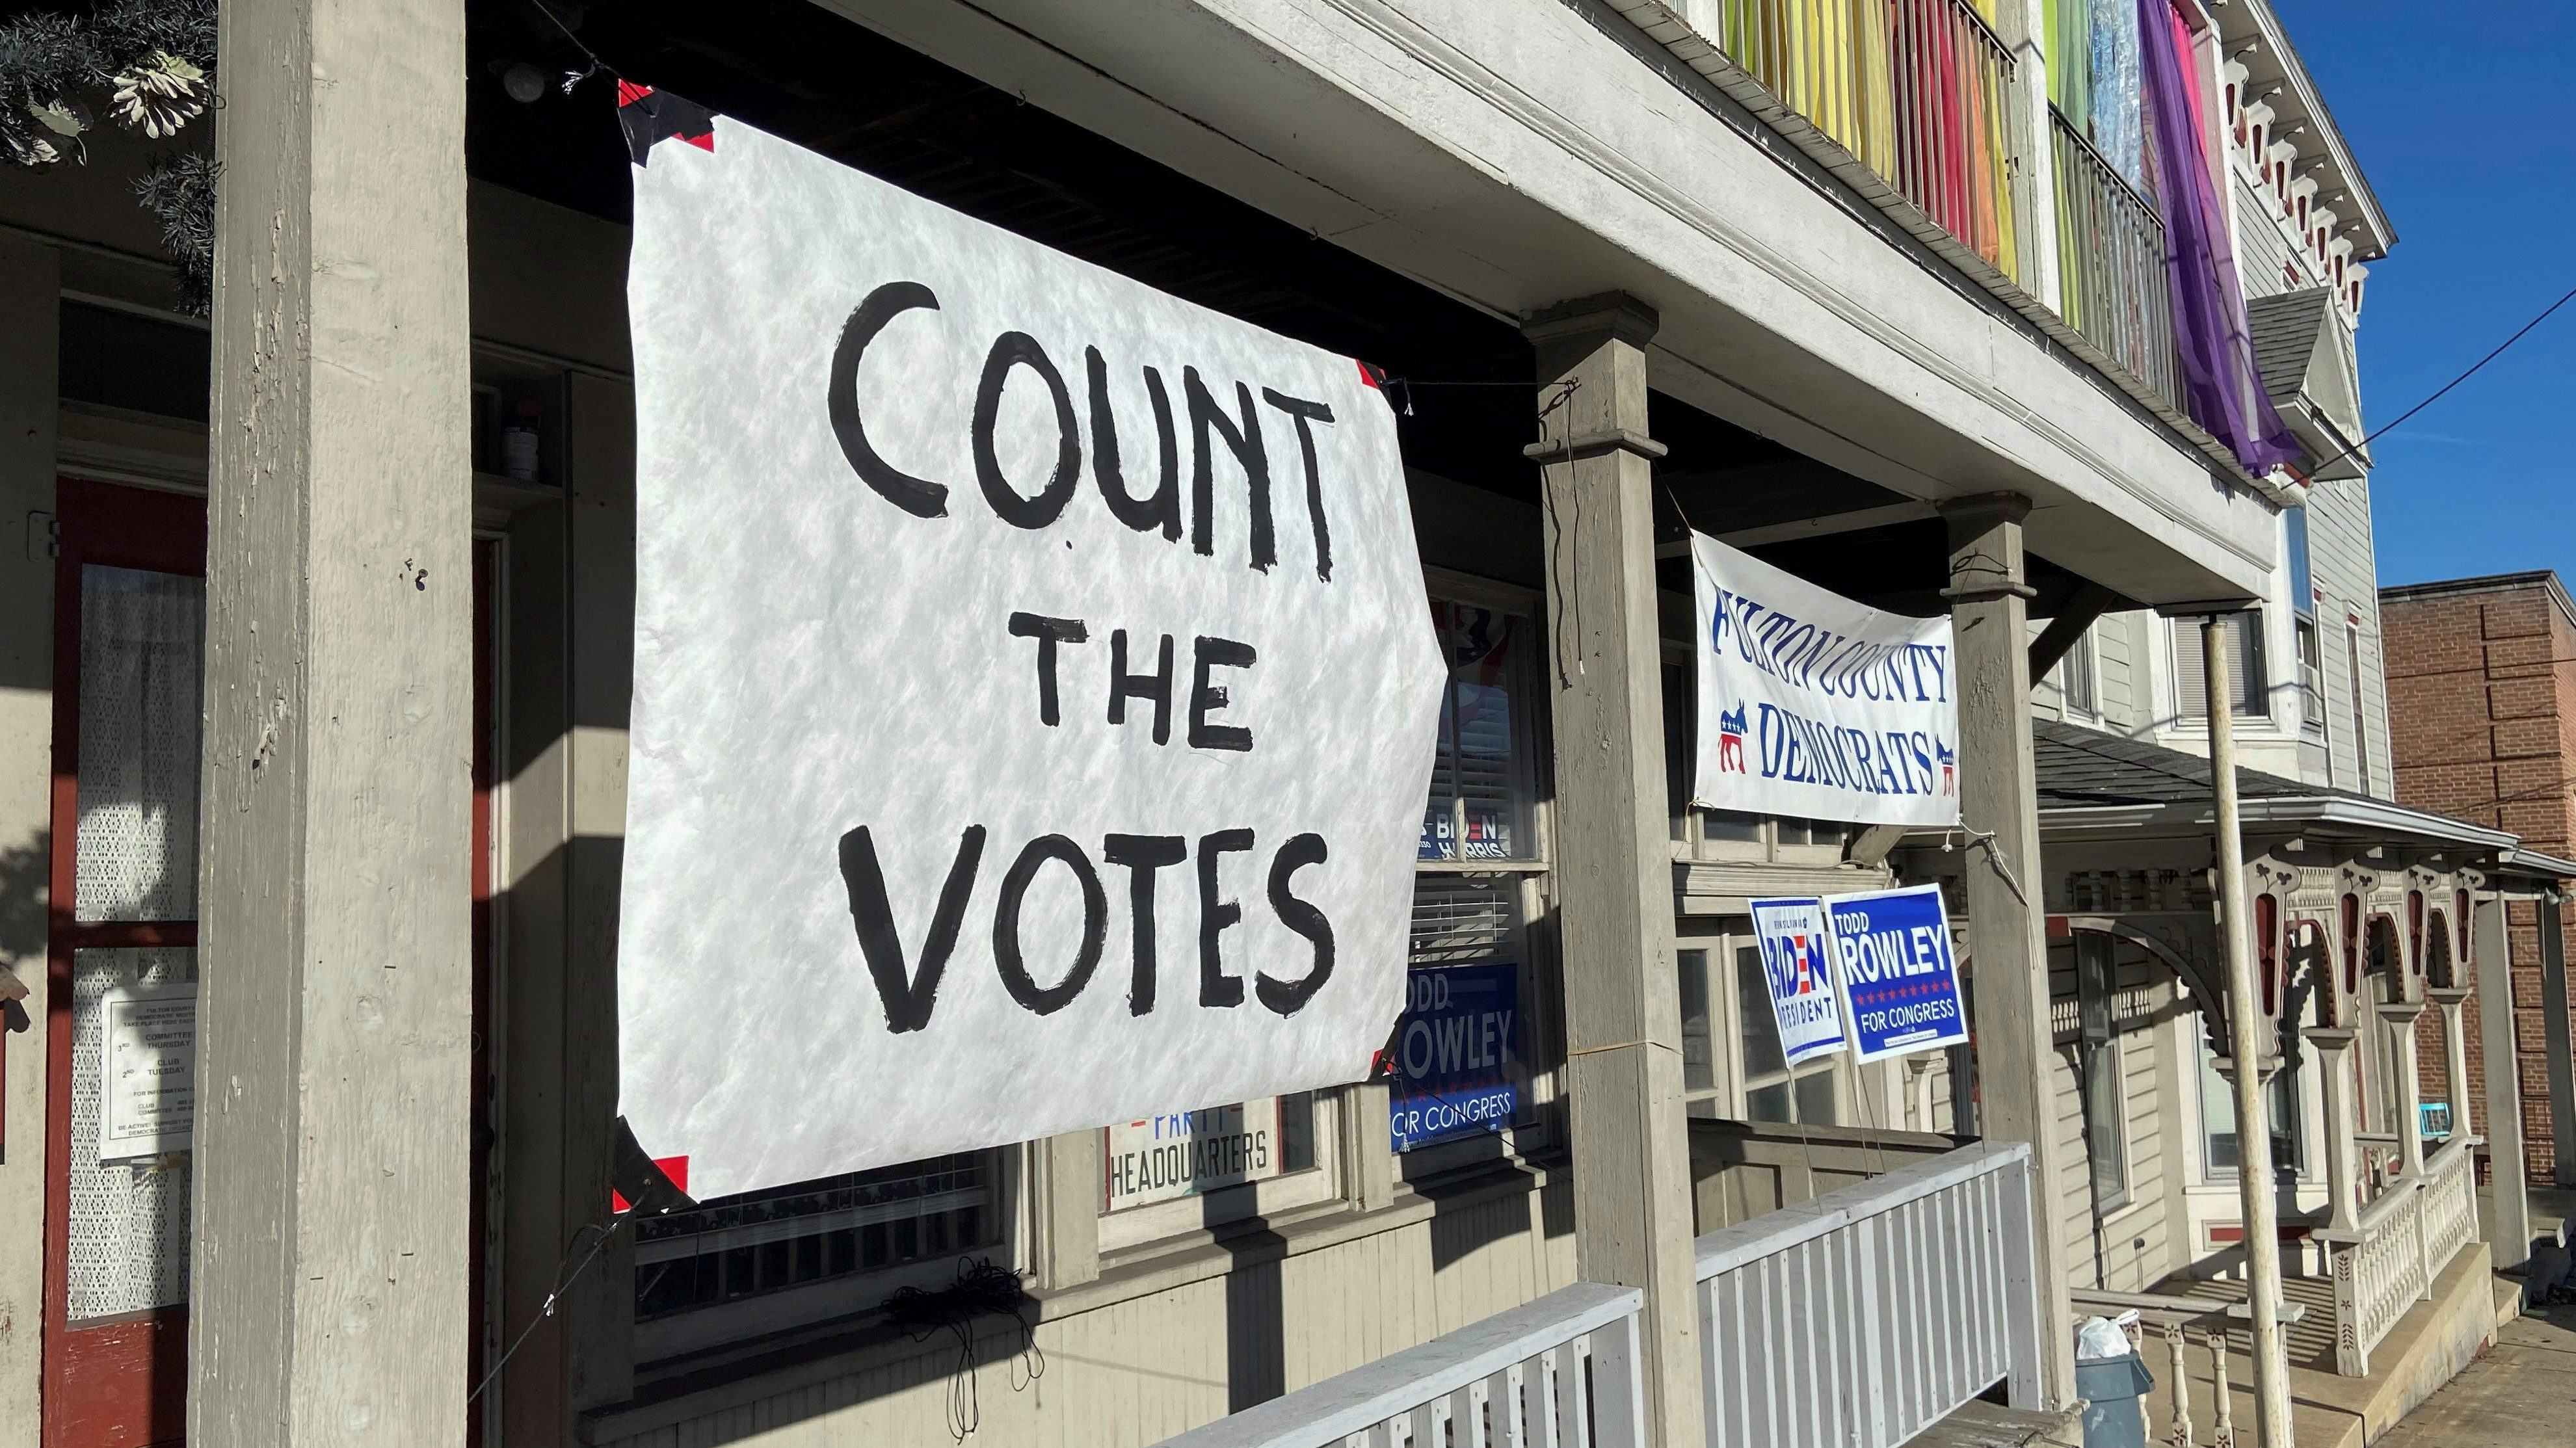 A sign urging people to vote is seen on the porch of the Democratic Party's Fulton County headquarters on Election Day in McConnellsburg, Pennsylvania November 3, 2020. Picture taken November 3, 2020.